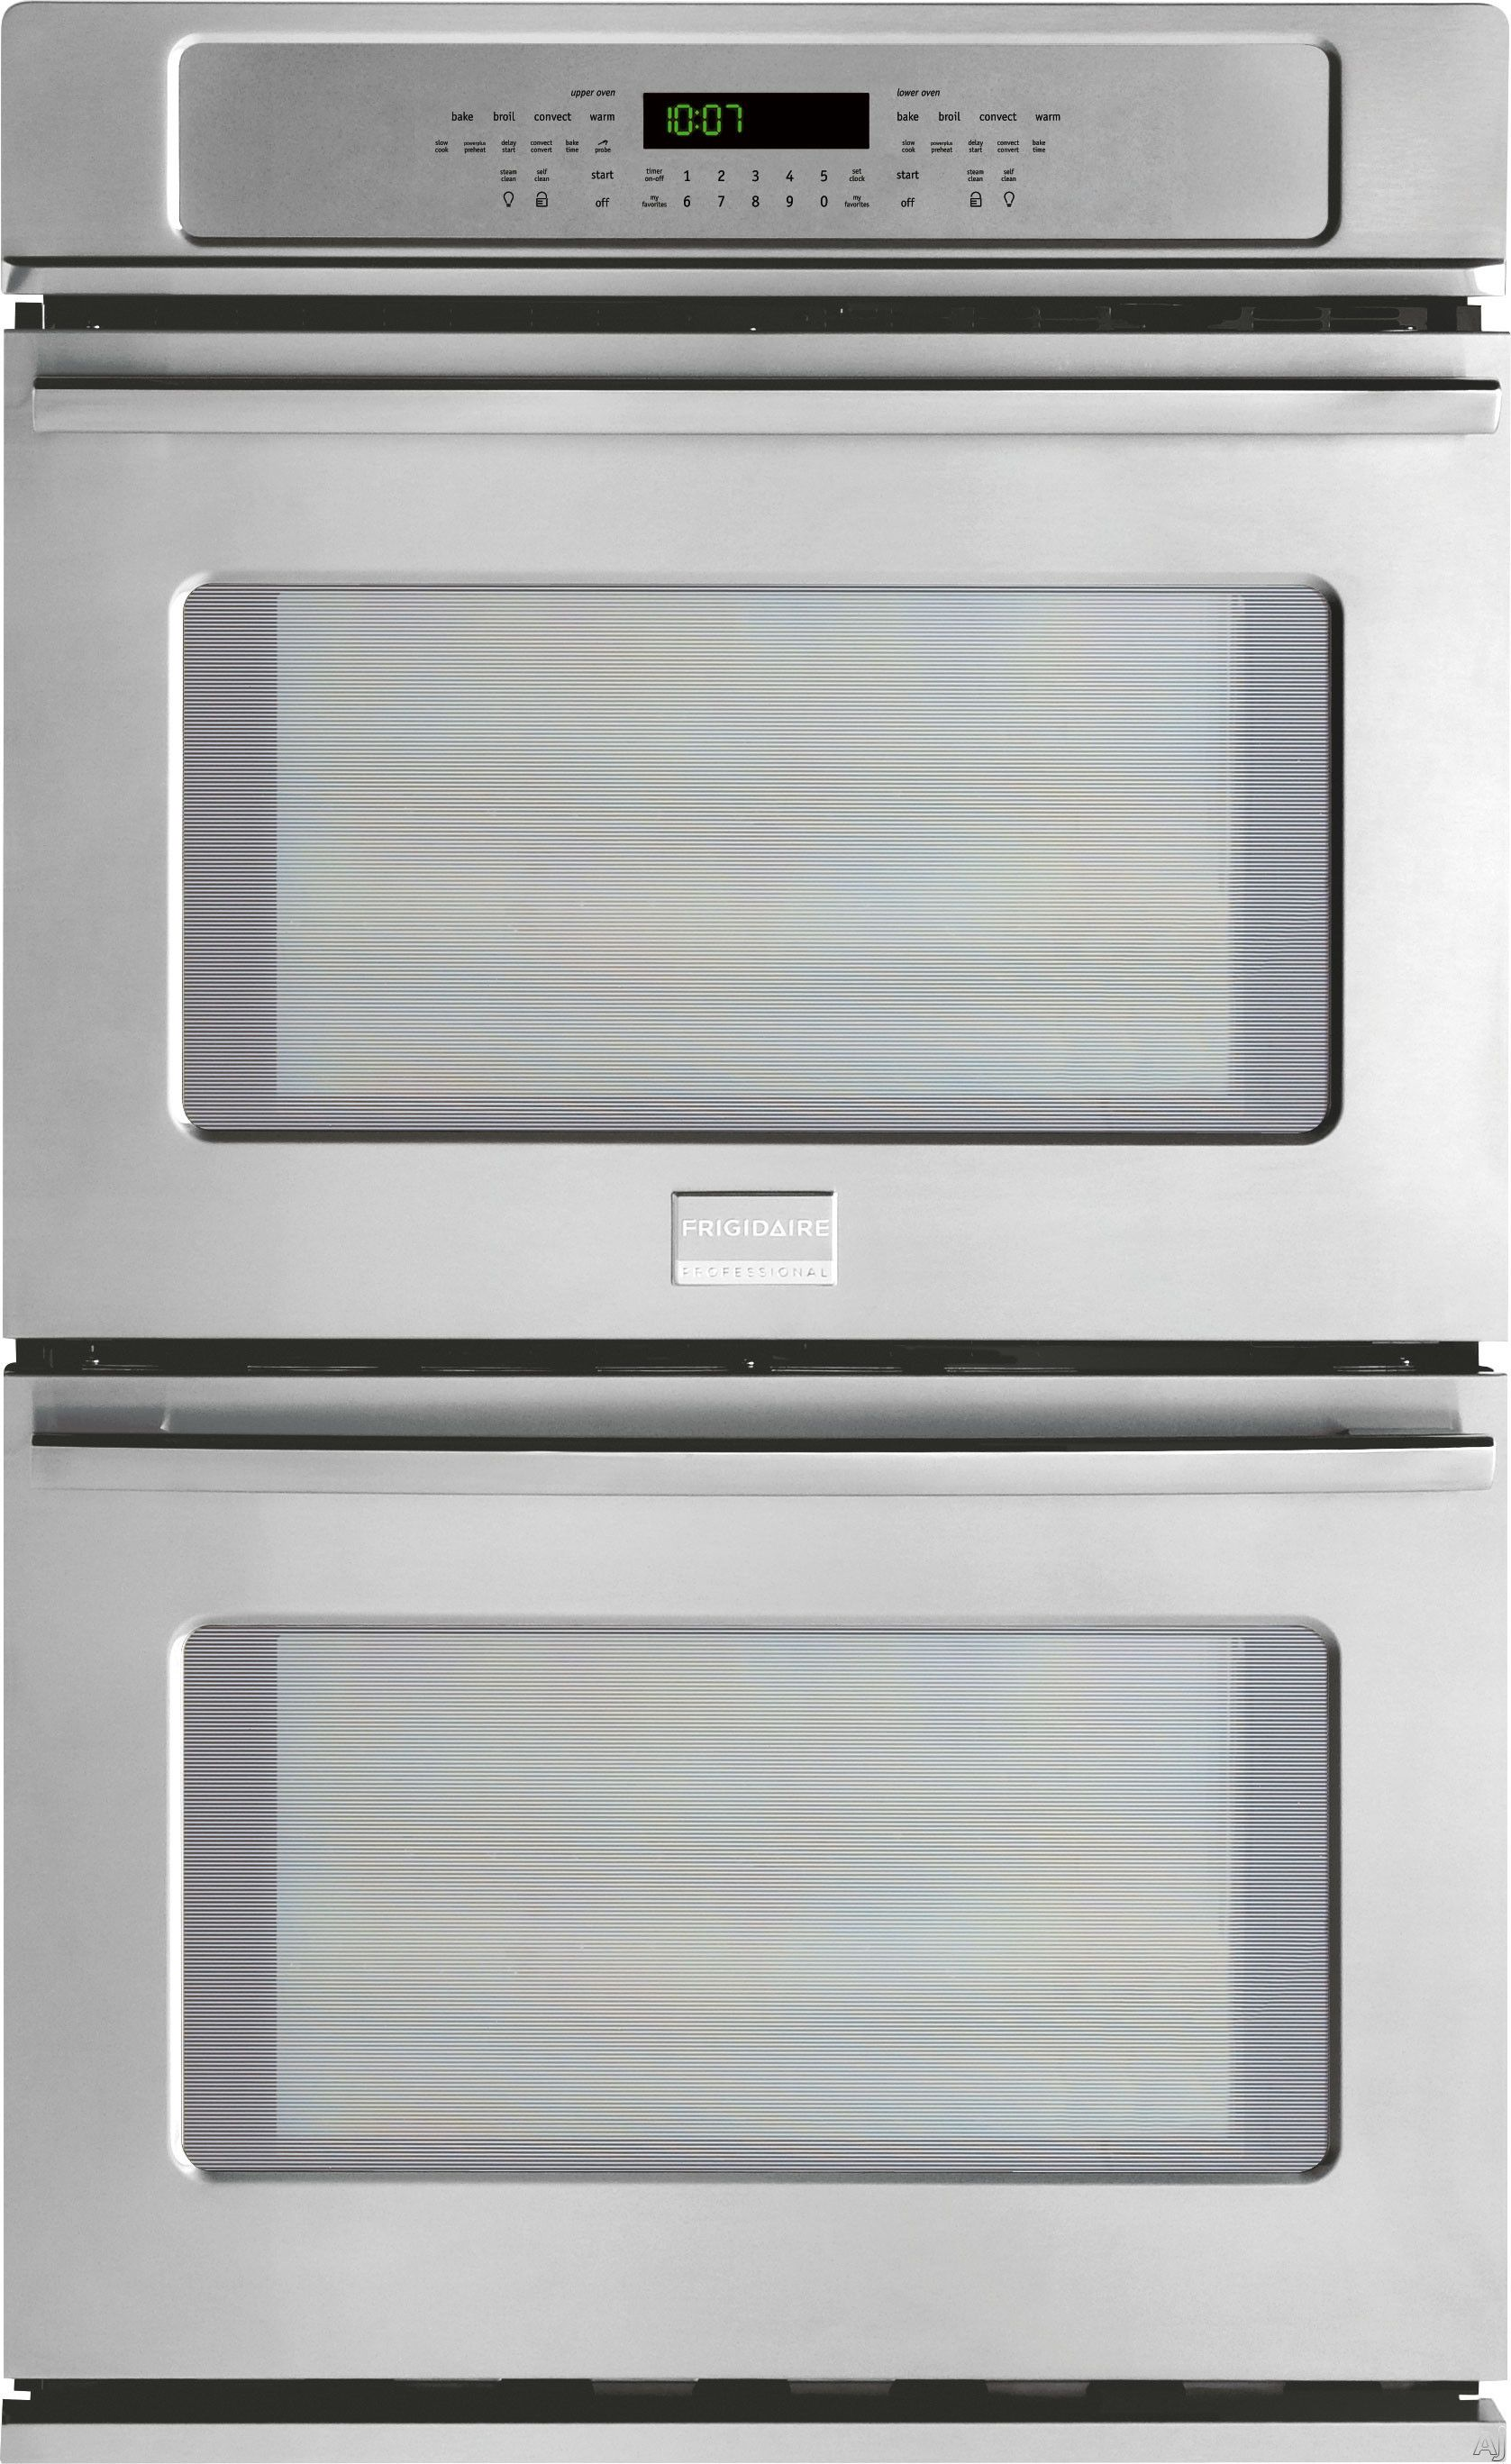 Frigidaire Professional Series Fpet3077rf Electric Wall Oven